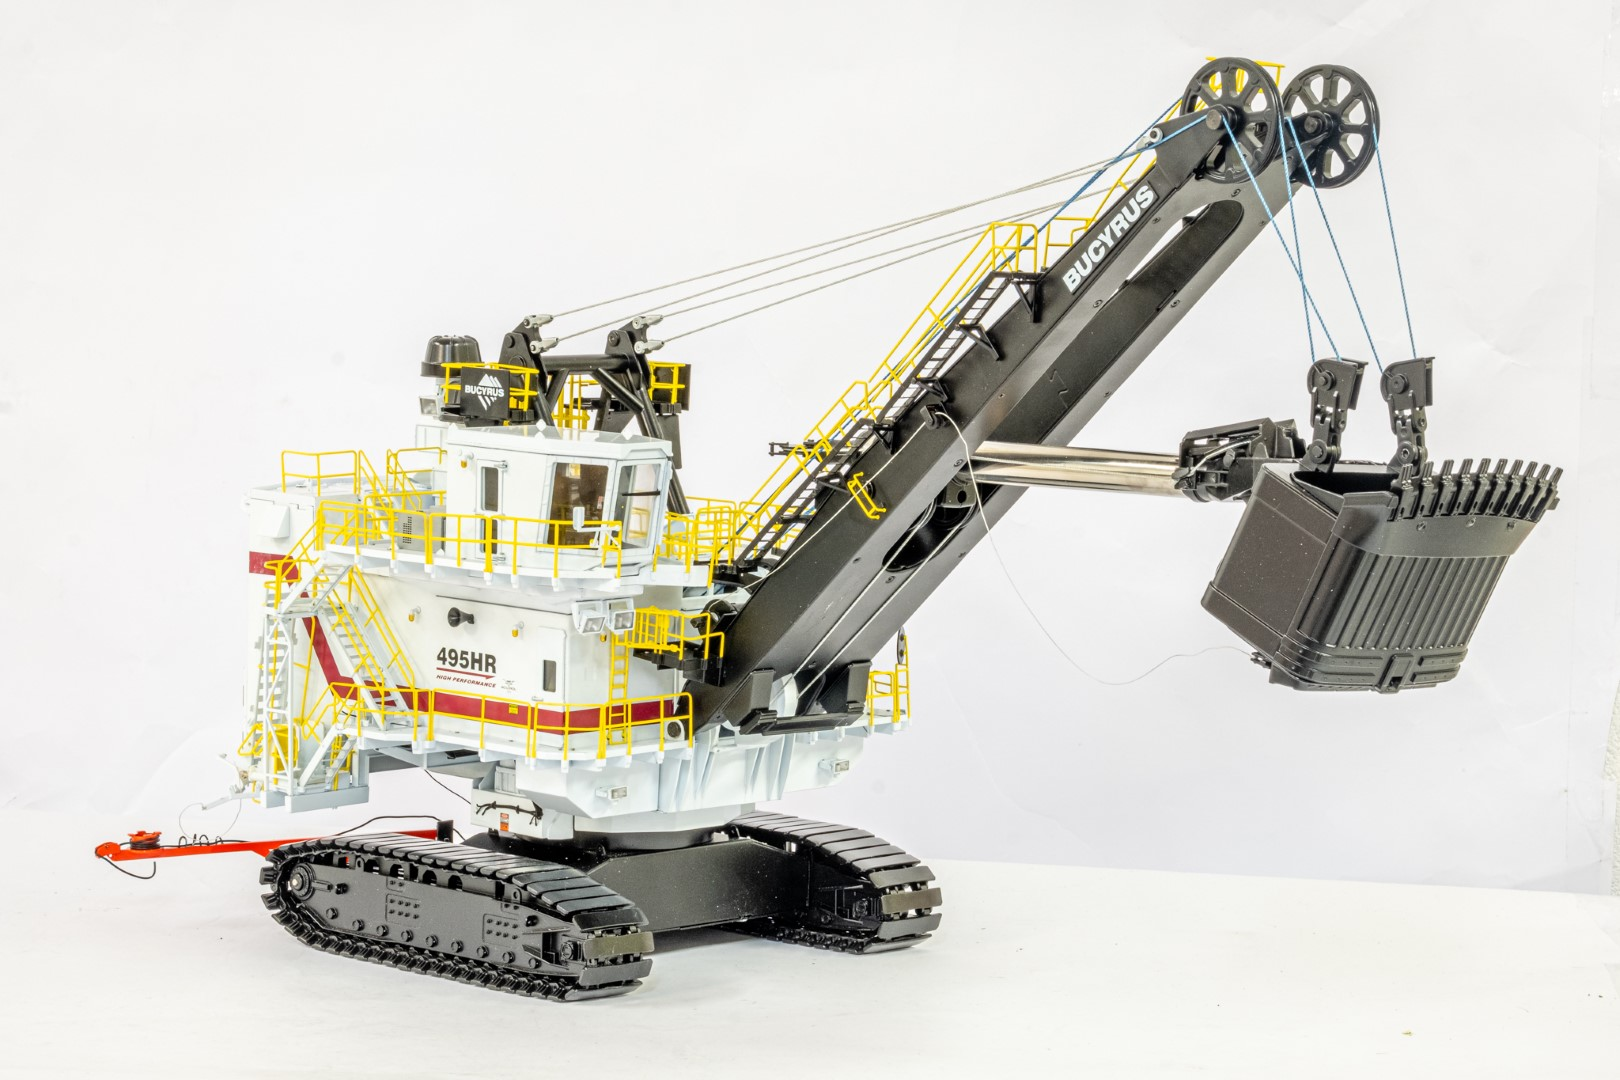 TWH Bucyrus 495HR Electric Mining Shovel - - Image 2 of 3